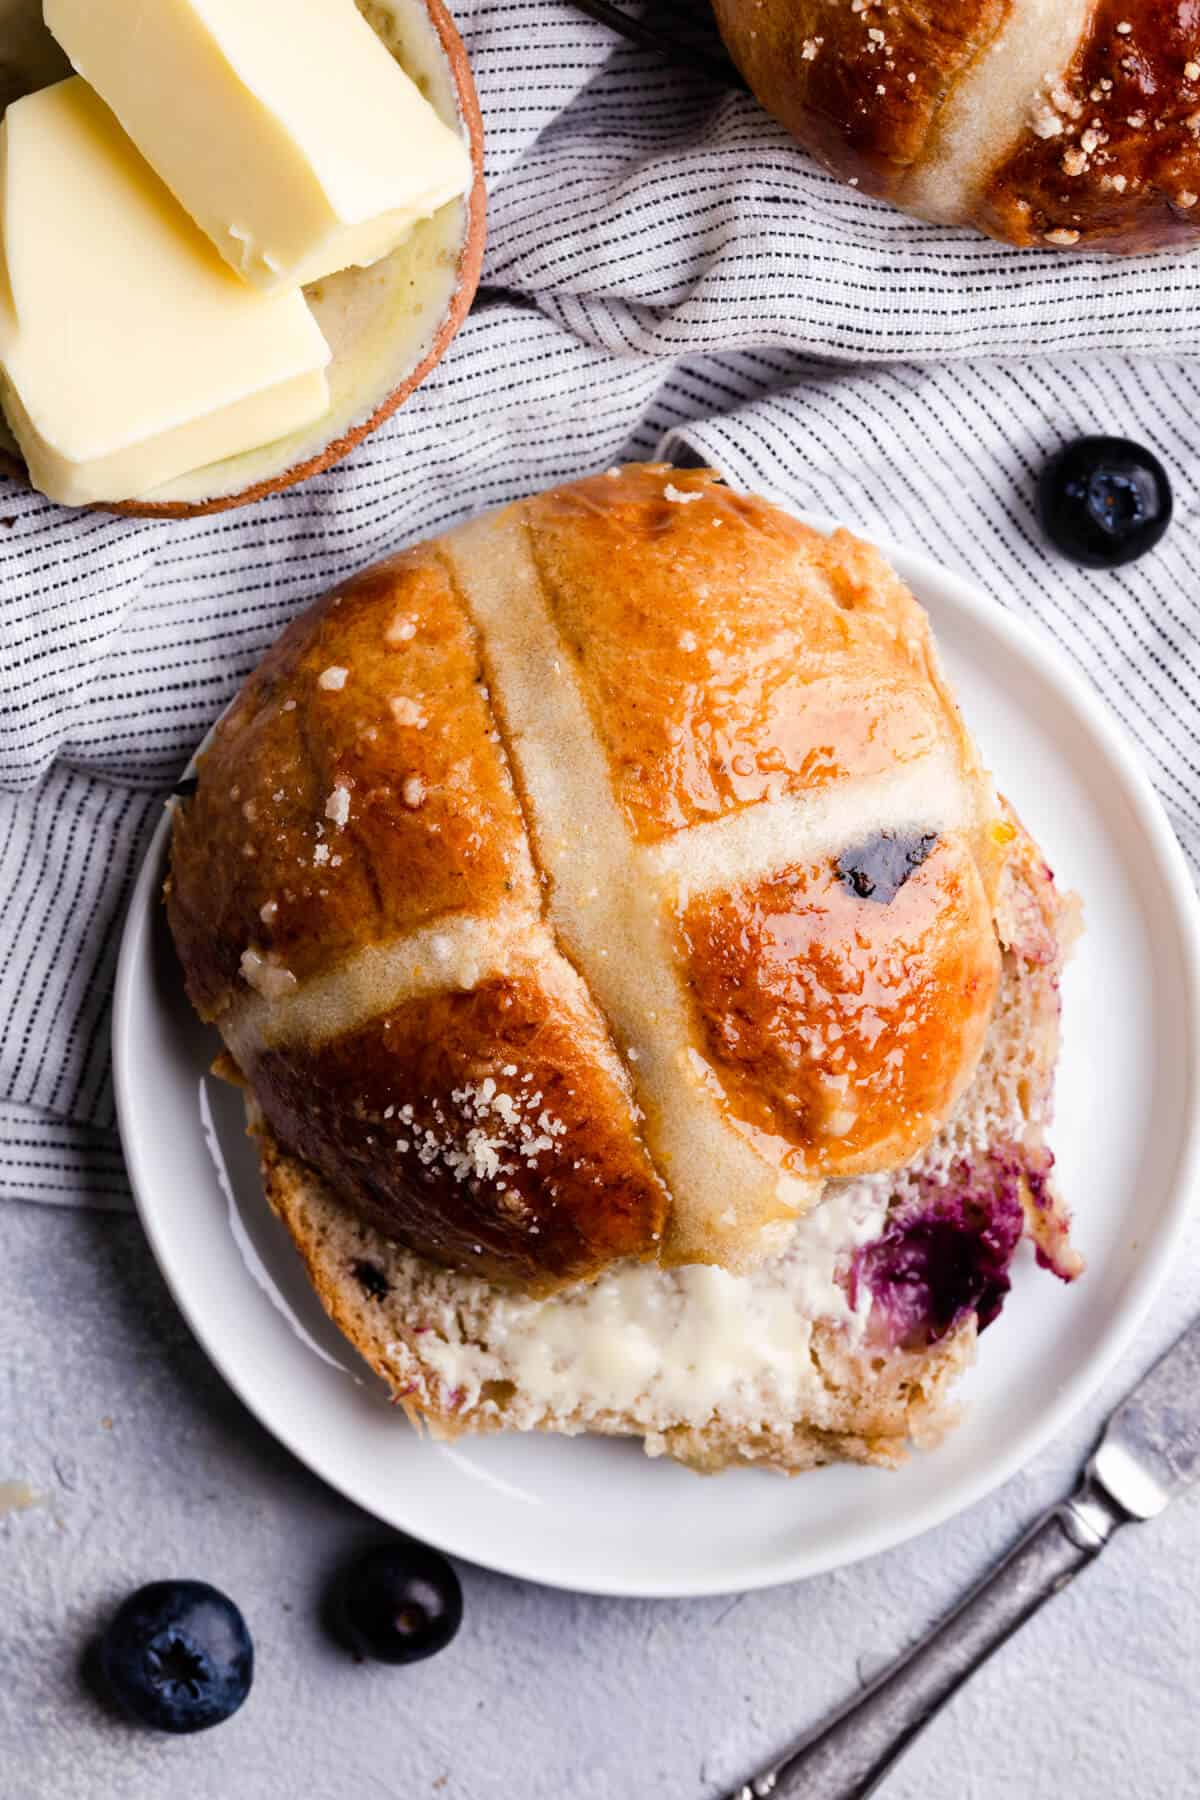 top view close up photo of blueberry hot cross bun with butter